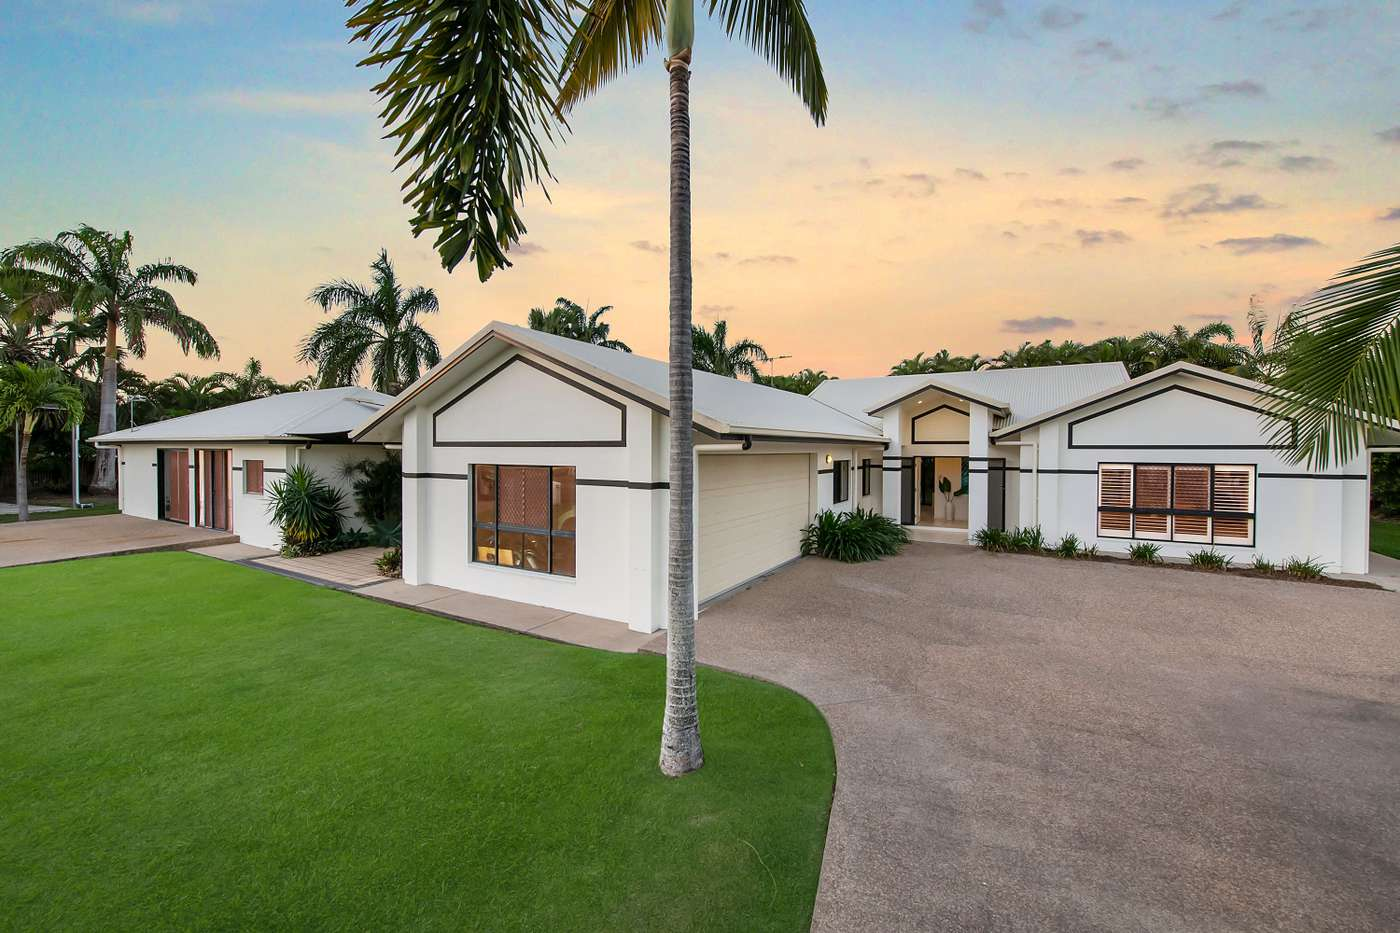 Main view of Homely house listing, 20 Chelsea Drive, Condon, QLD 4815